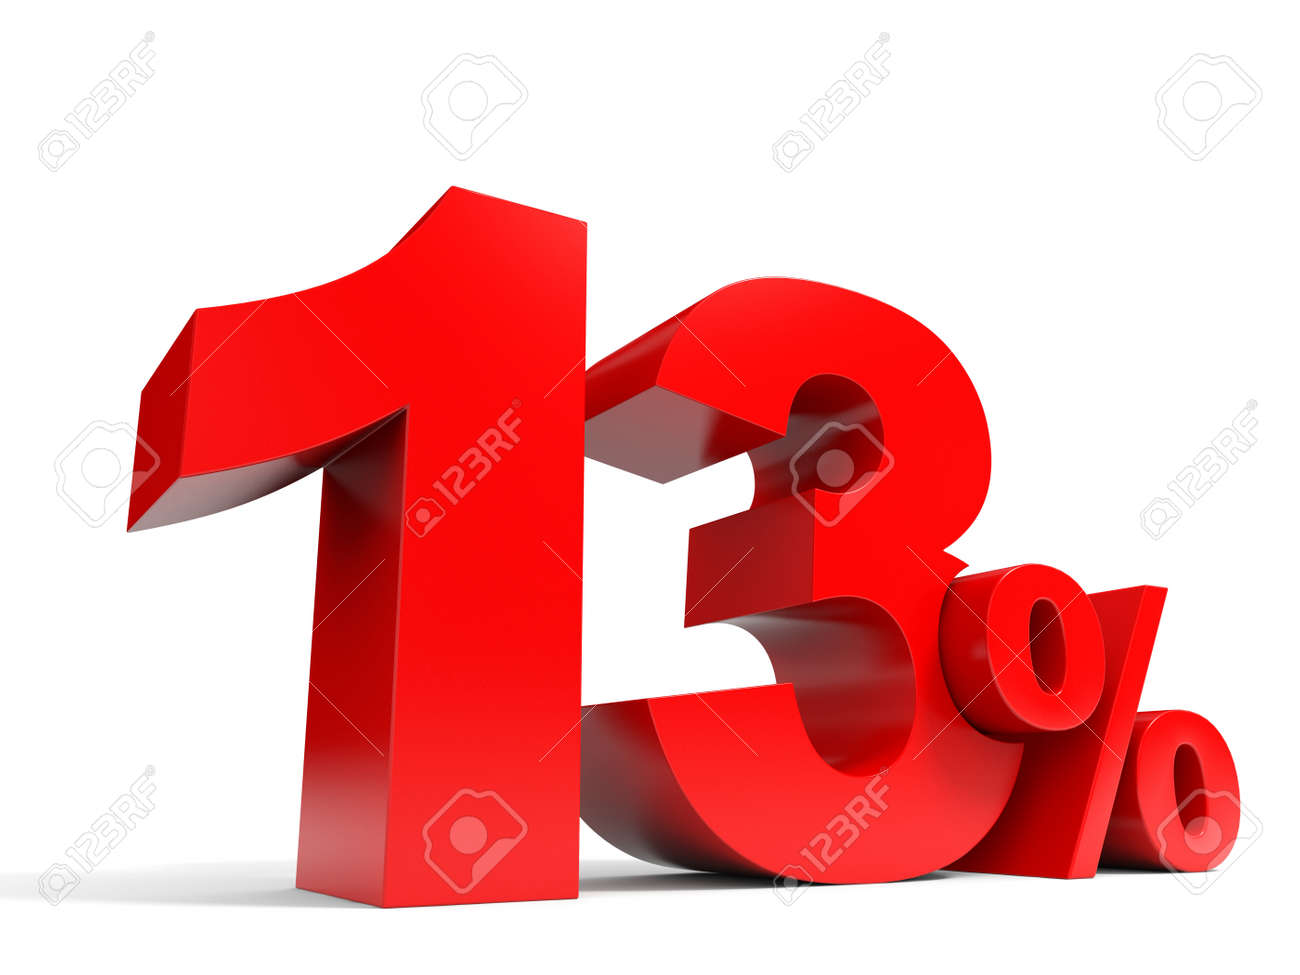 Red Thirpercent Off Discount 13 3d Il Ration Stock Il Ration 30890617